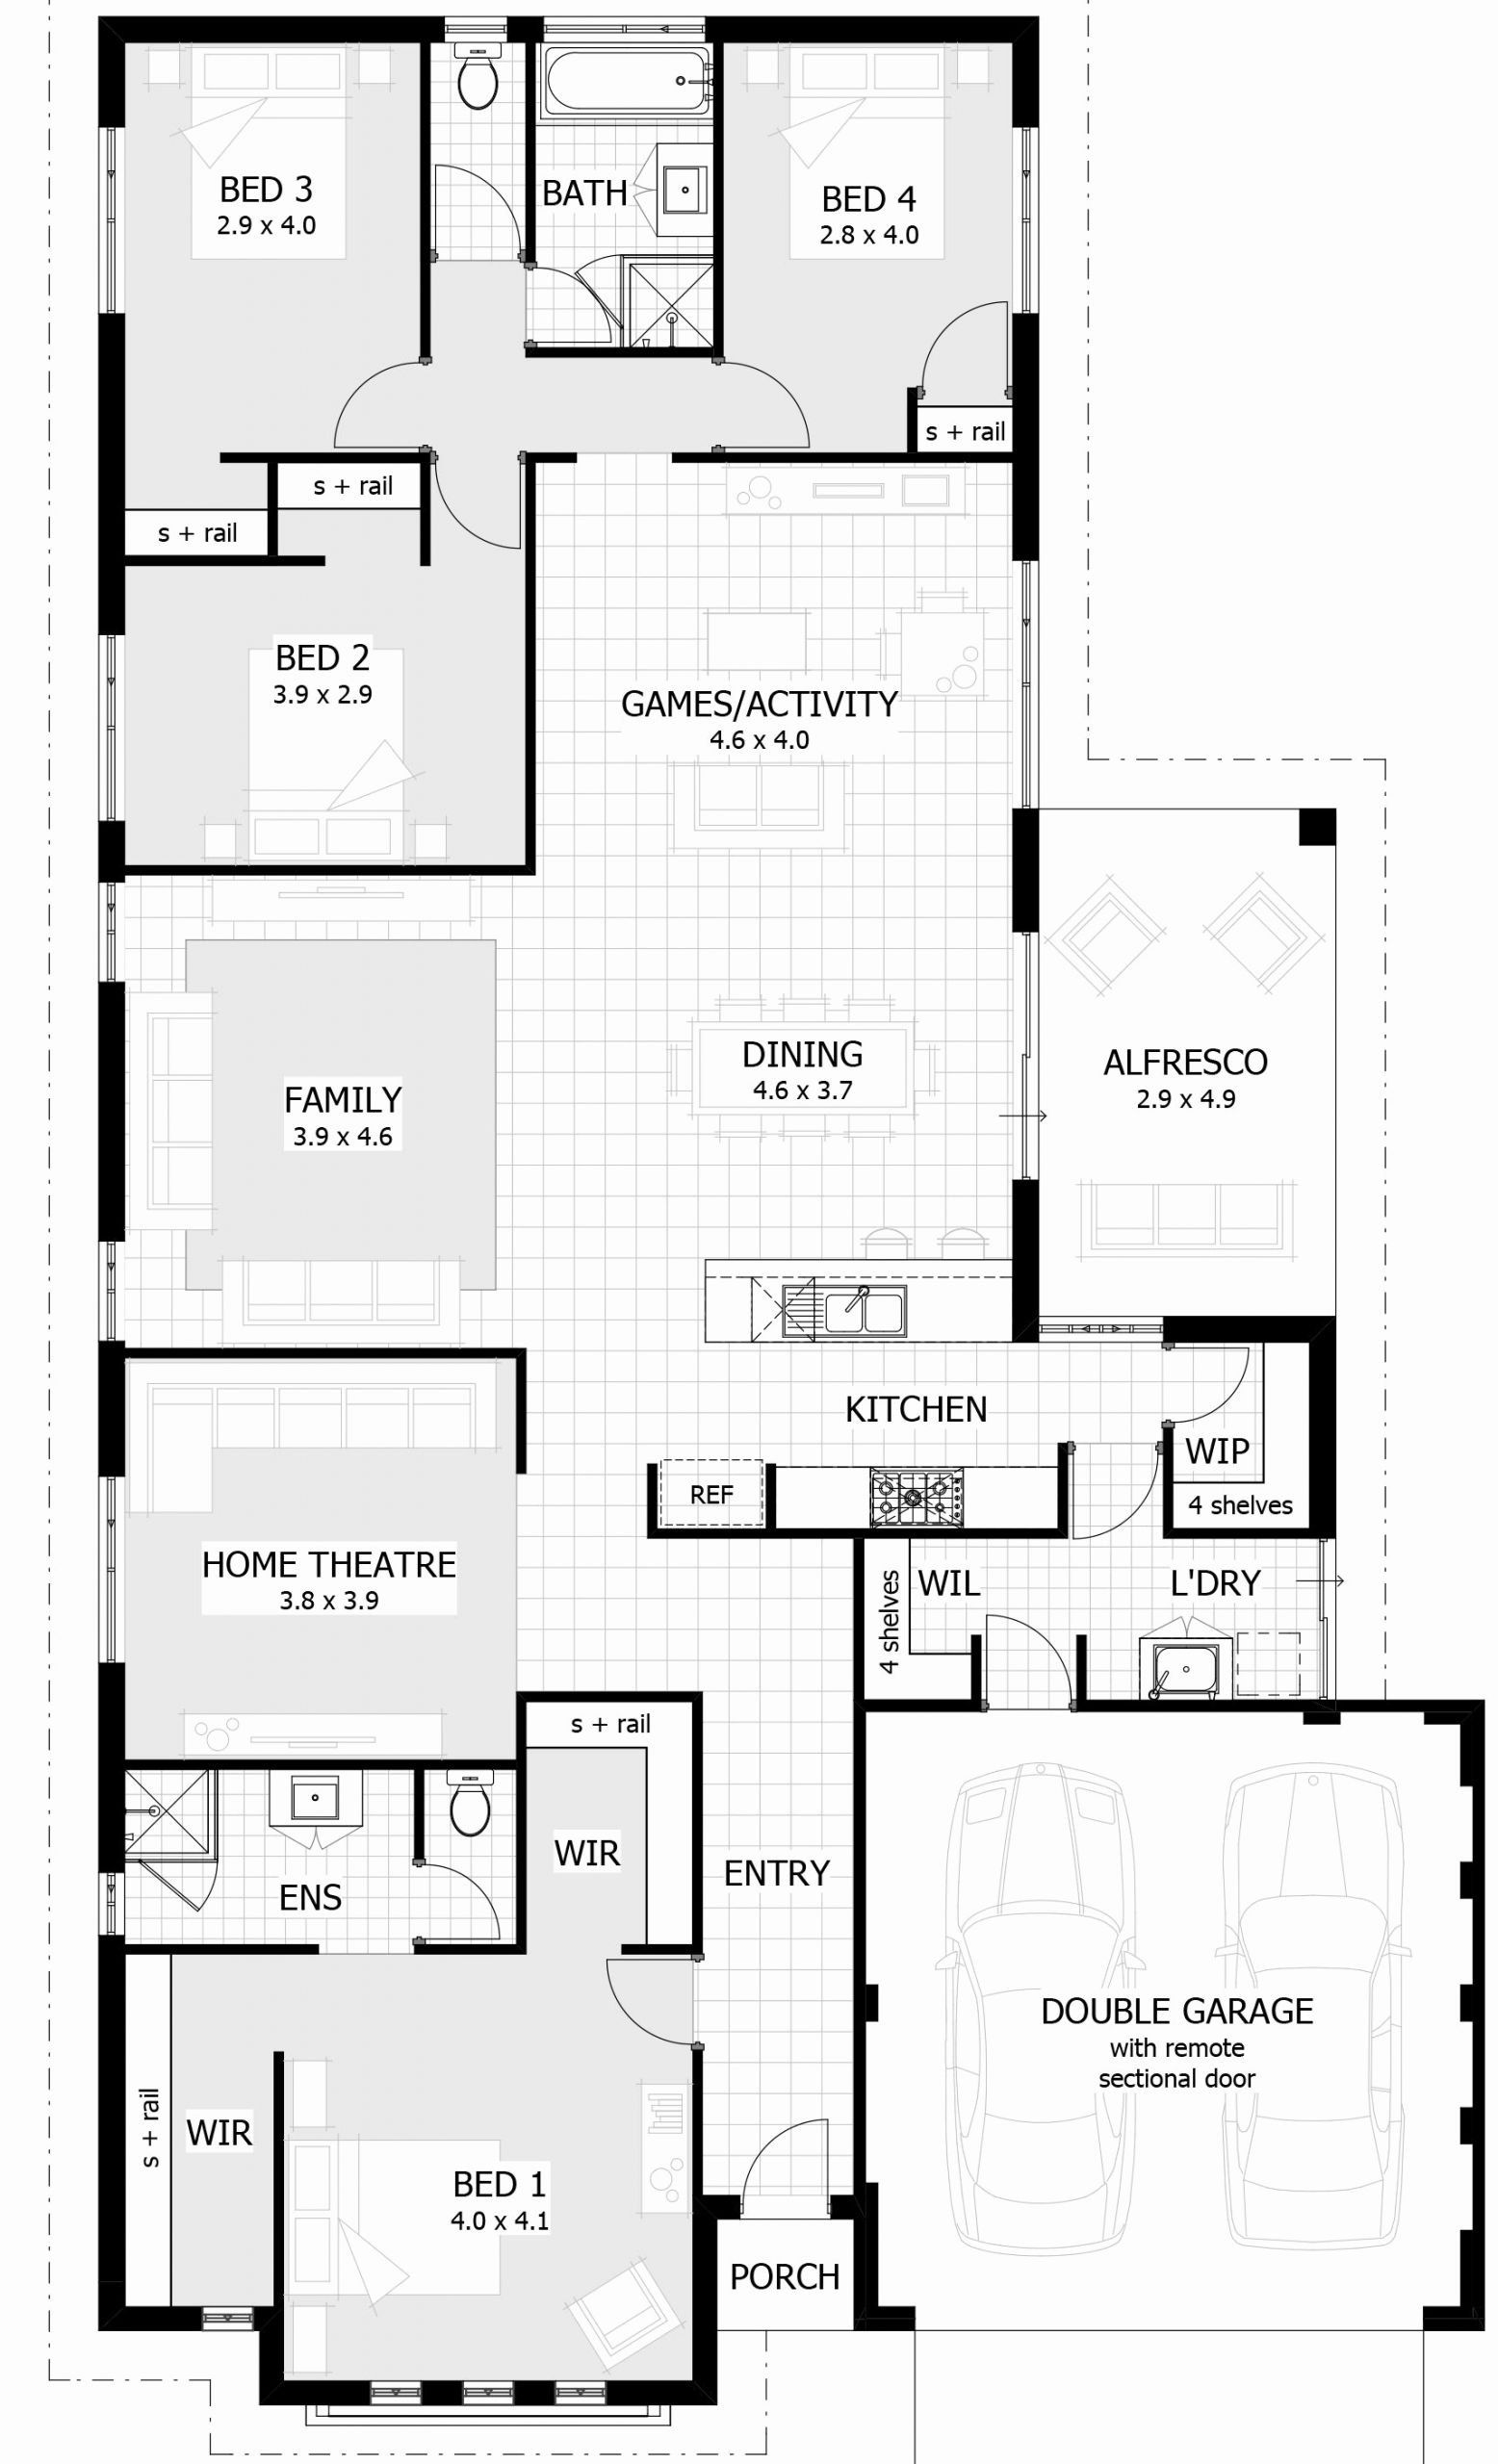 Simple 6 Bedroom House Plans Best Of Home Designs With Activity Room 6 Bedroom House Plans Bedroom House Plans 4 Bedroom House Plans